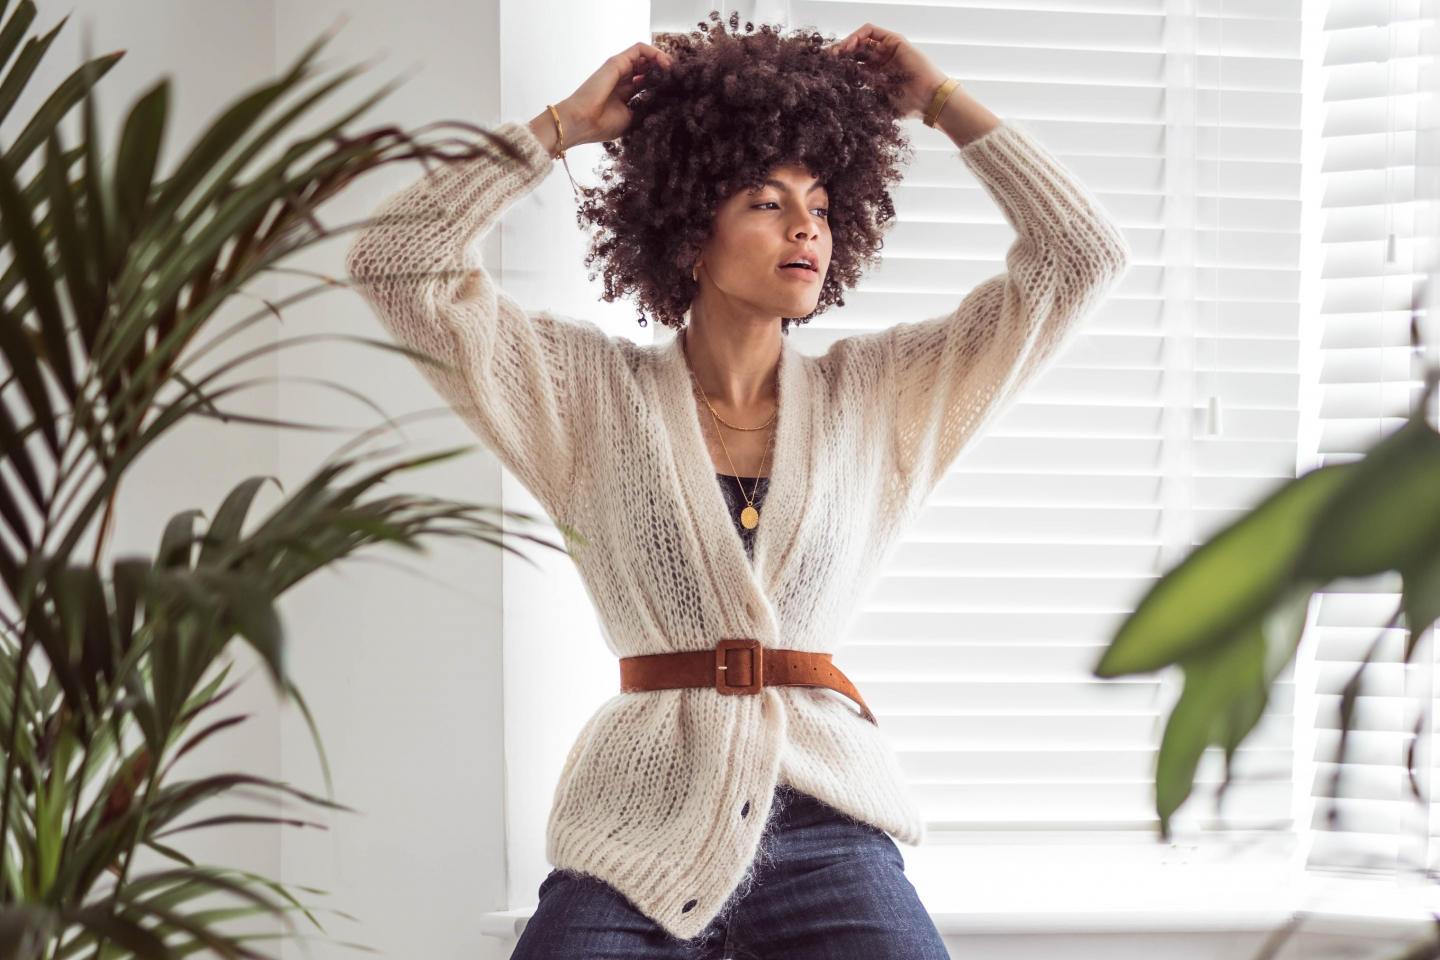 Samio And Other Stories Chunky Knit Cardigan and Tan belt